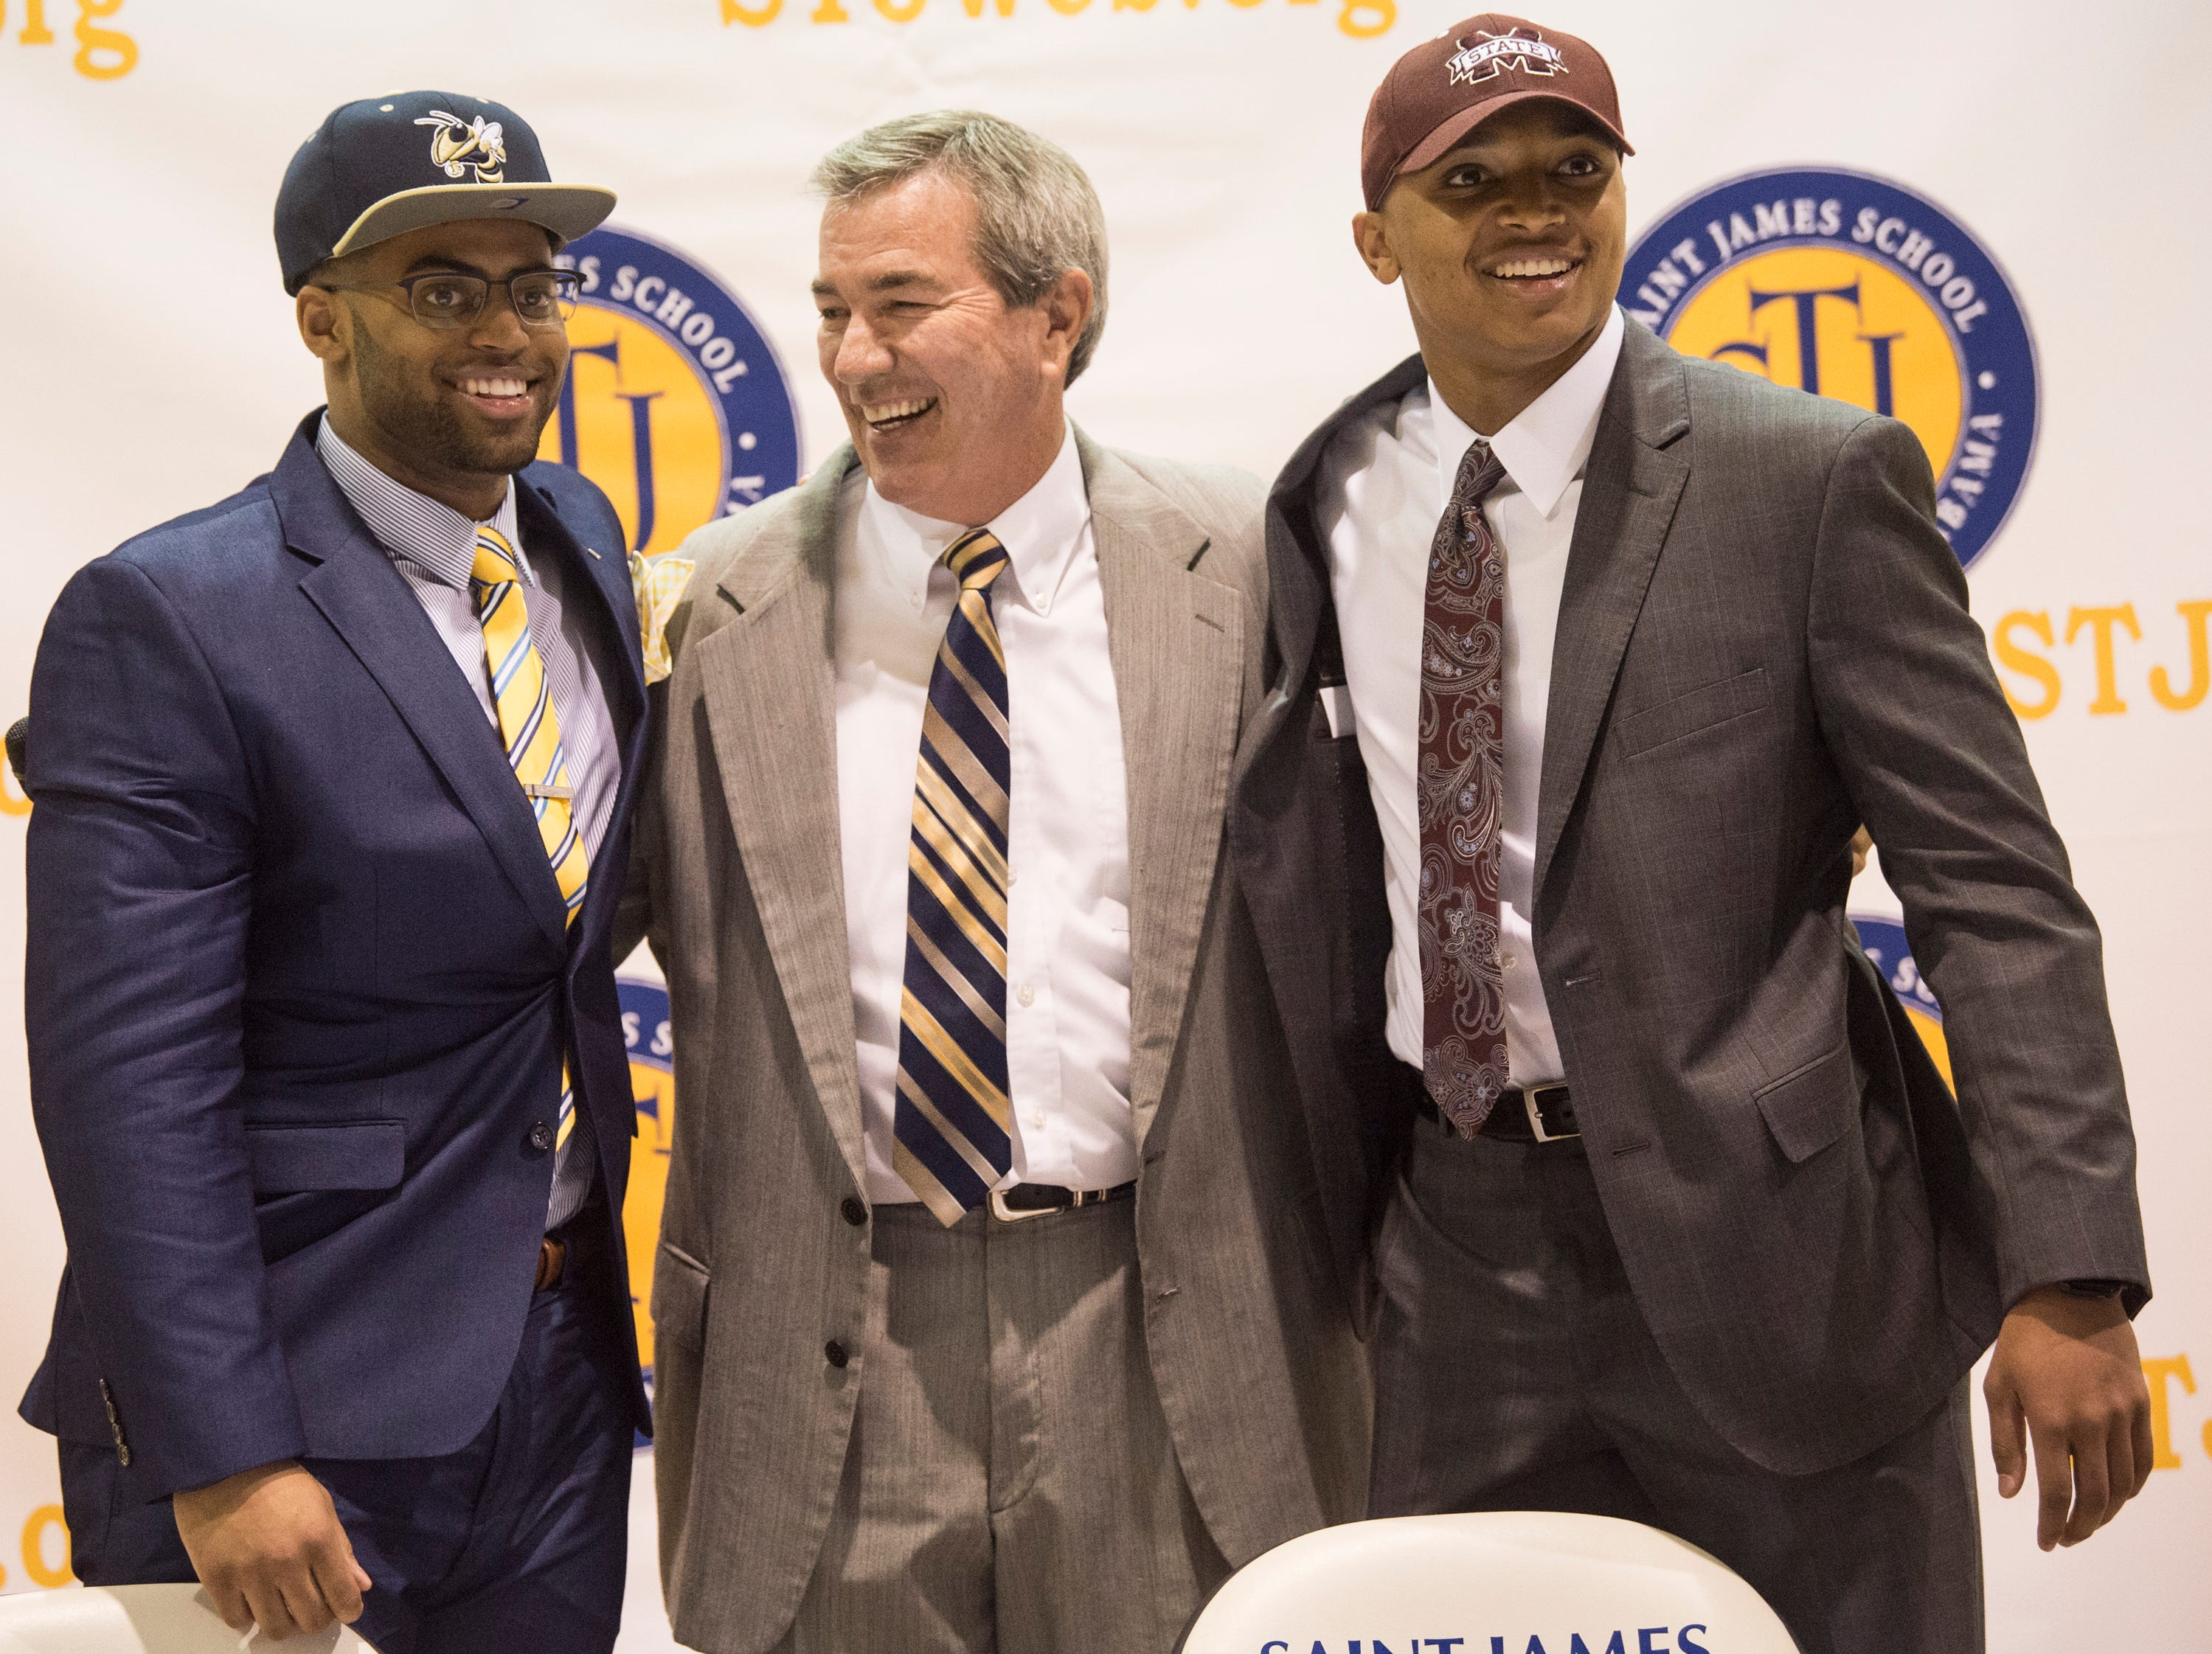 Tony Amerson, from left, coach Jimmy Perry and Collin Duncan during signing day at St. James High School in Montgomery, Ala., on Wednesday, Feb. 6, 2019.